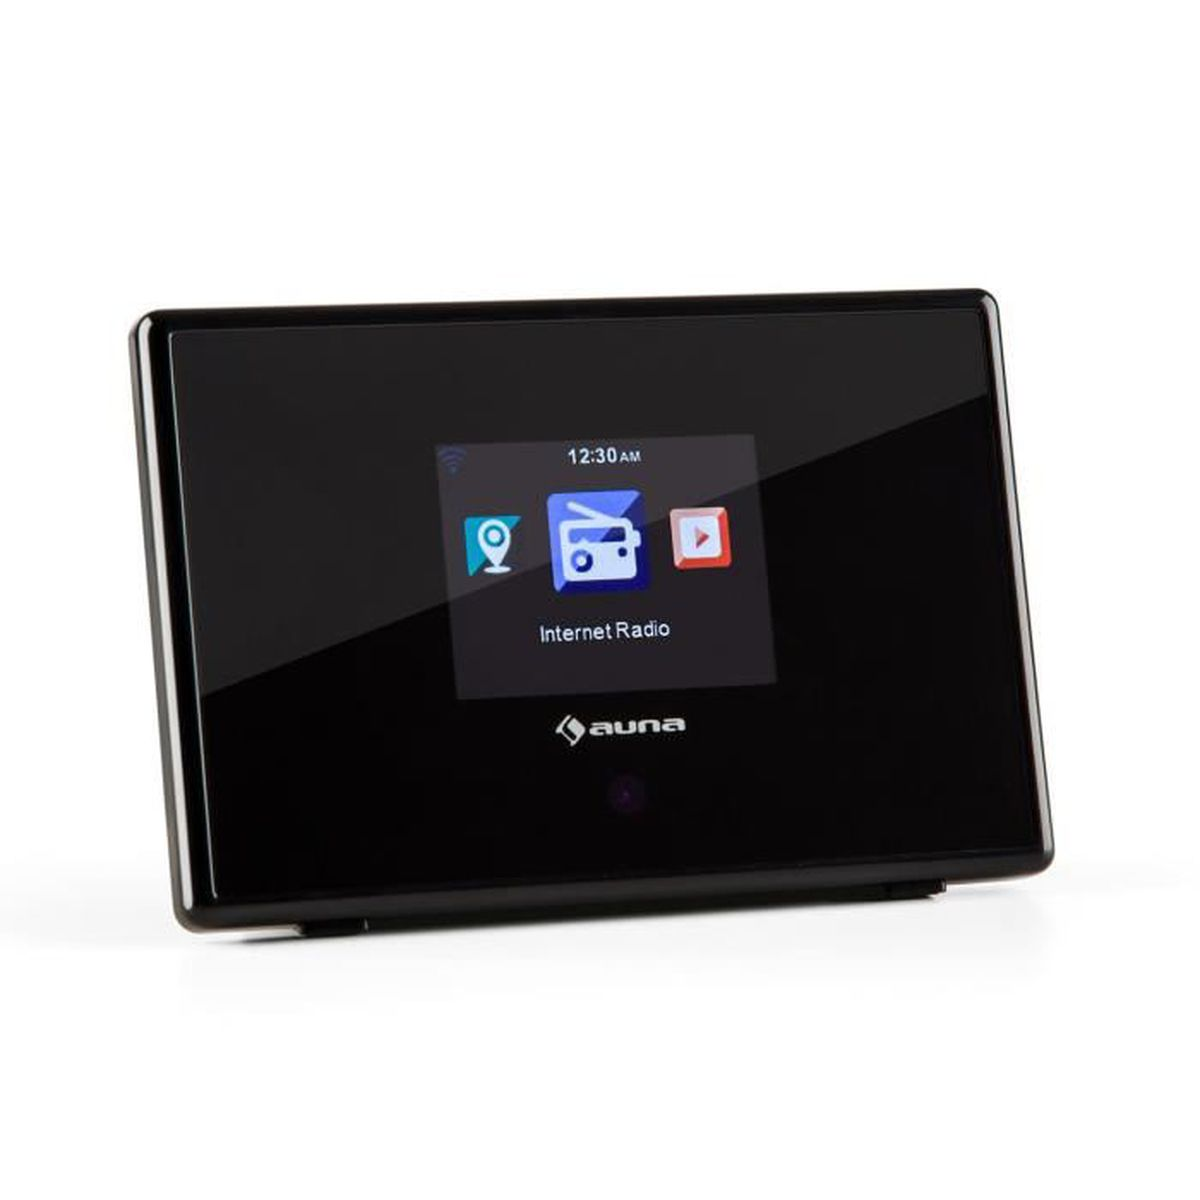 Auna iadapt 240 tuner radio internet pour streaming sans for Radio parlamento streaming